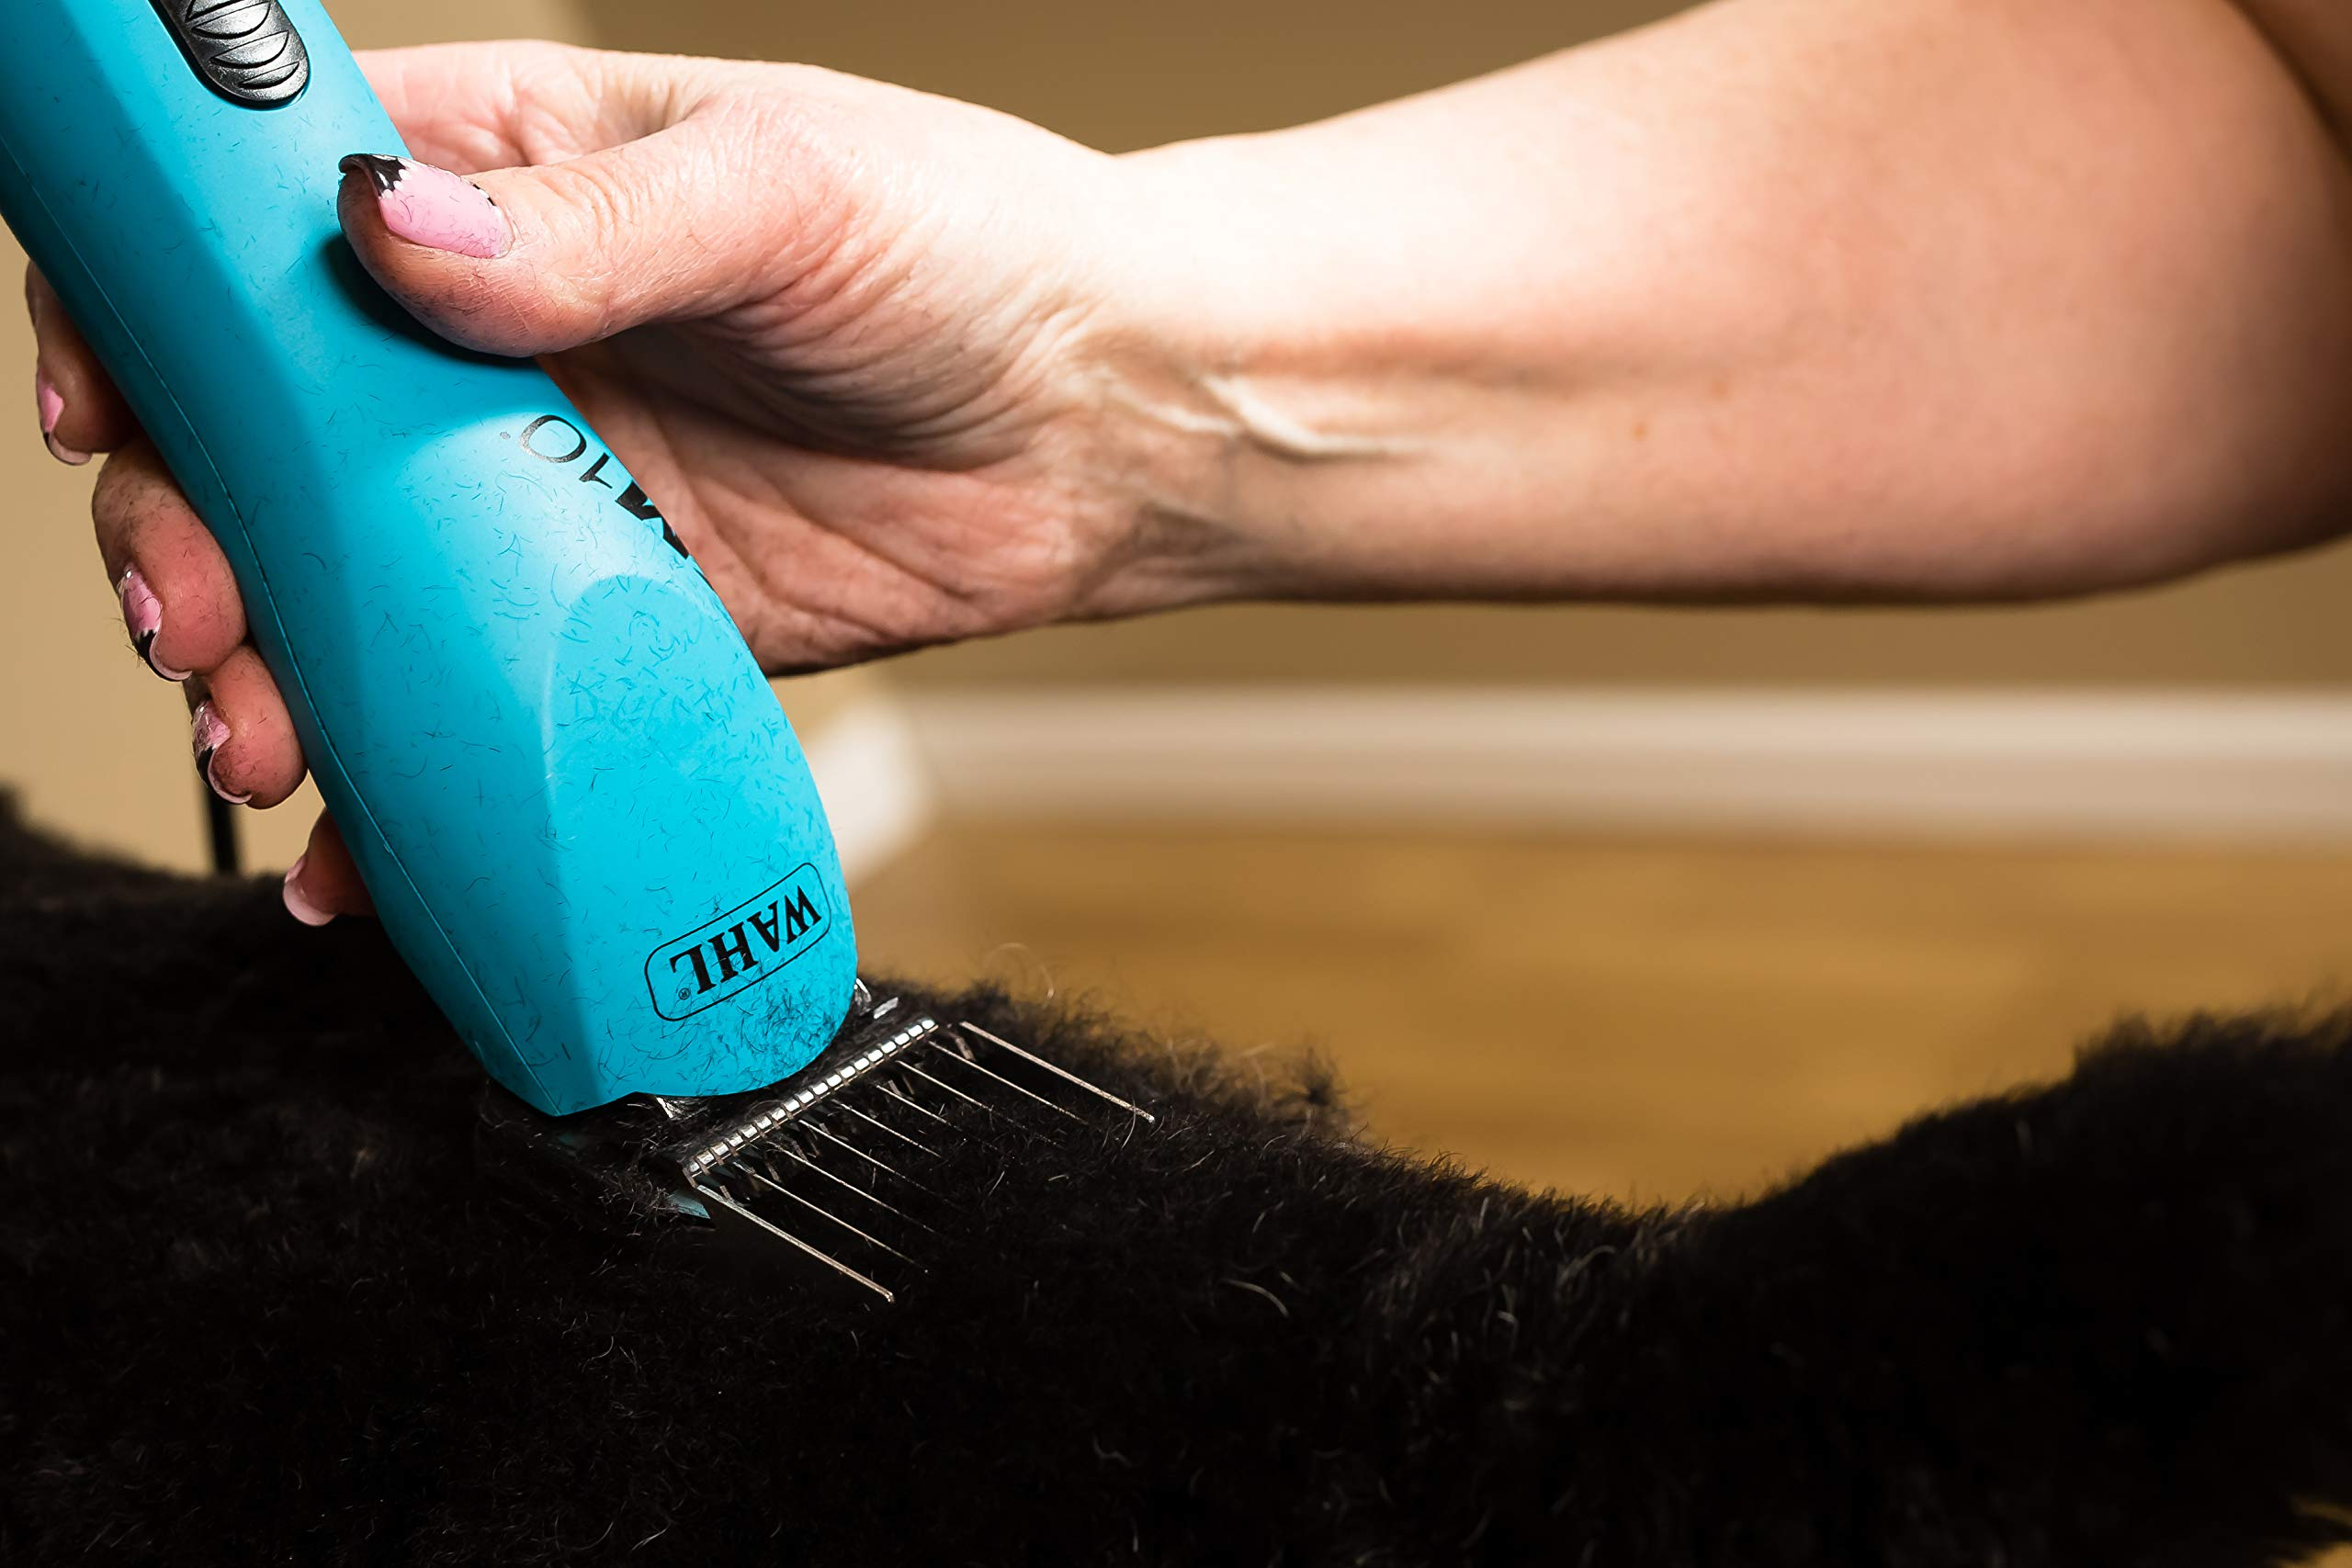 Wahl Professional Animal KM10 2-Speed Brushless Motor Pet Clipper Kit, Turquoise (#9791) by Wahl Professional Animal (Image #6)